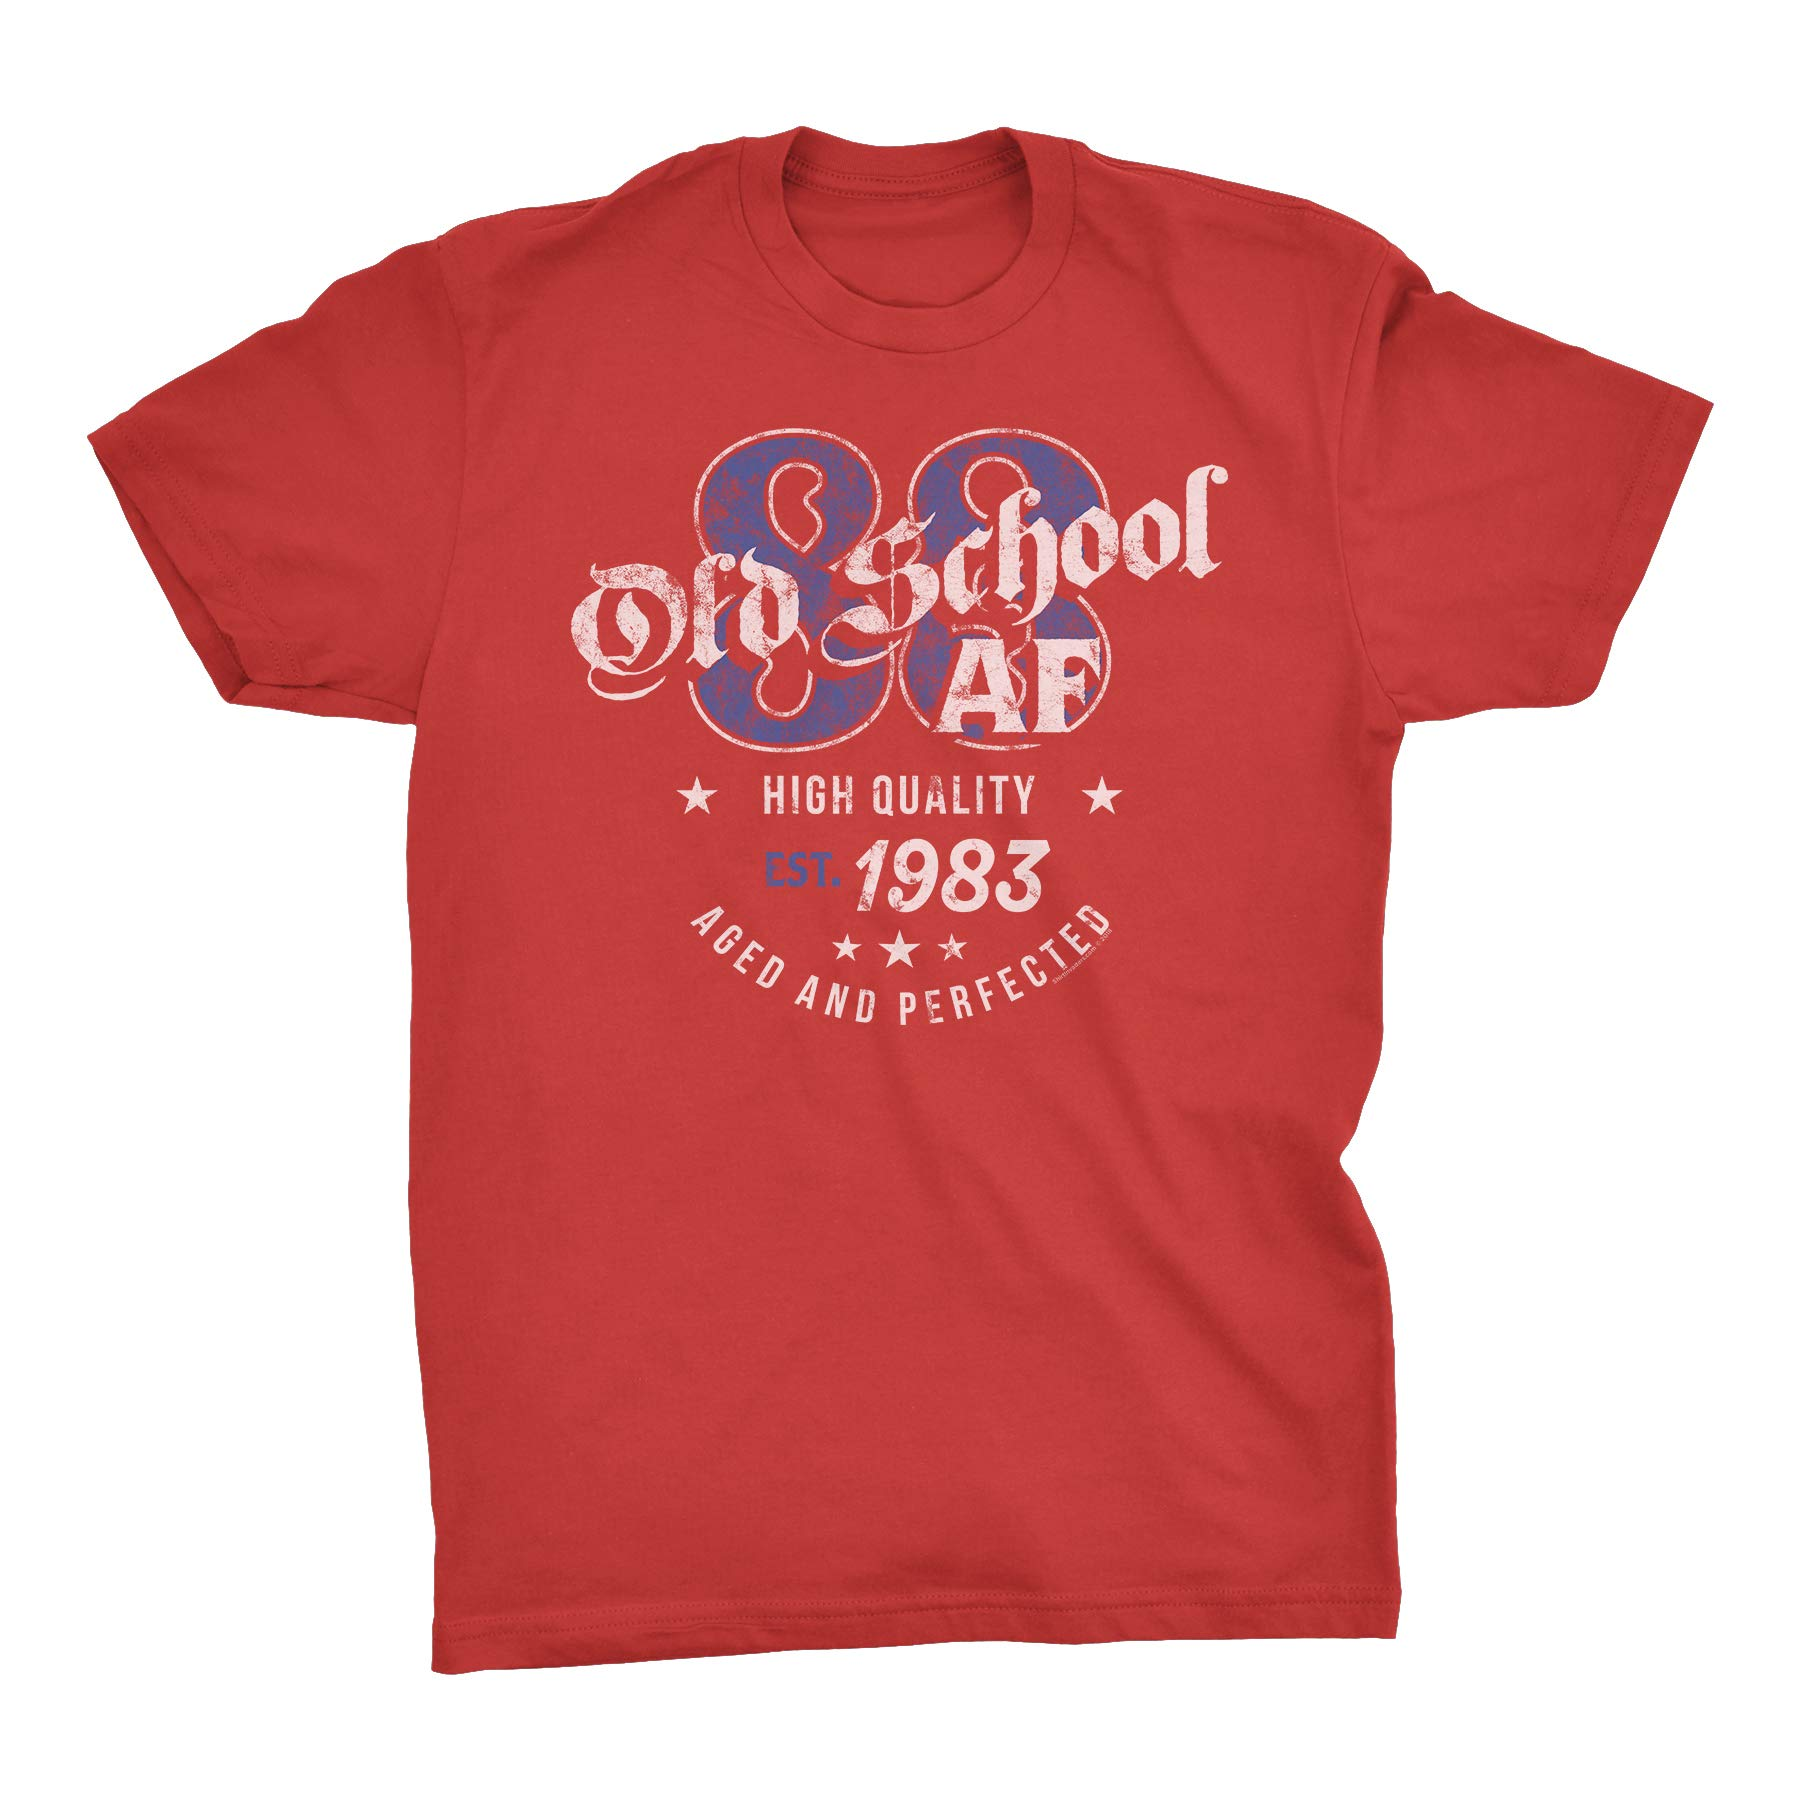 Shirtinvaders 36th Birthday Gift T Shirt Old School Af 1983 Aged And Perfected 5863